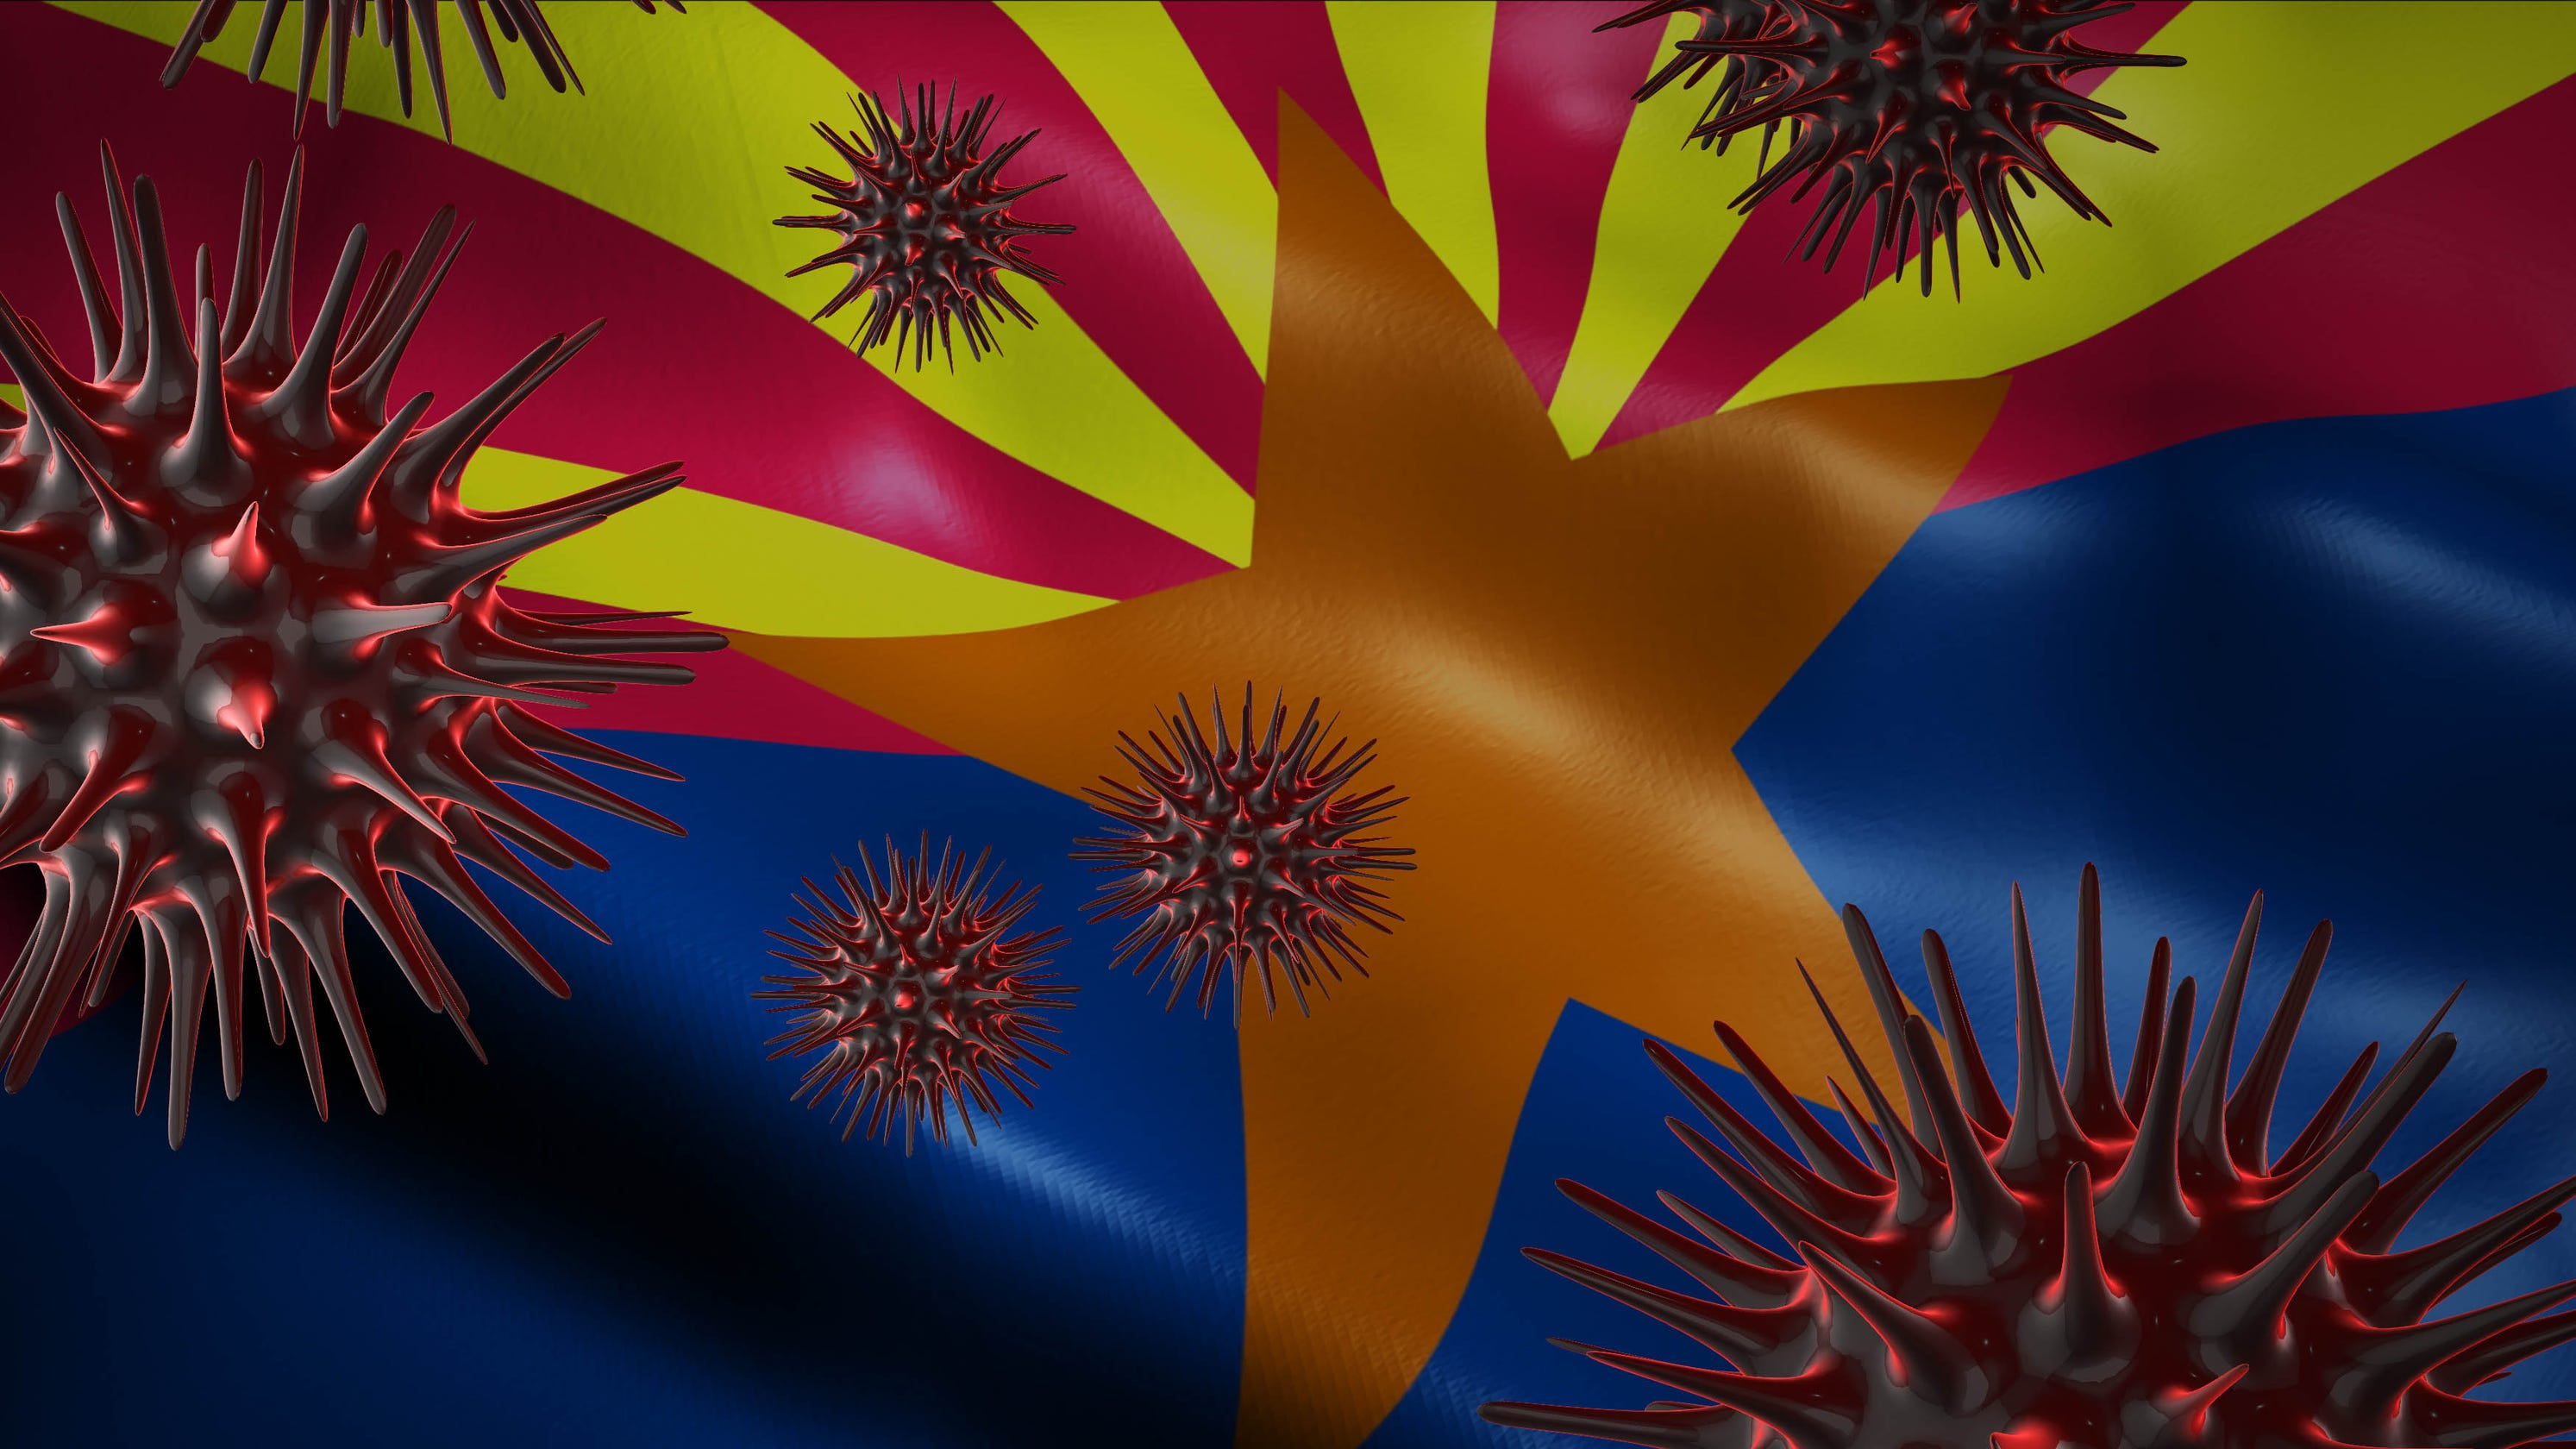 Arizona is now No. 1 in the world for coronavirus but some Arizonans say it's no big deal